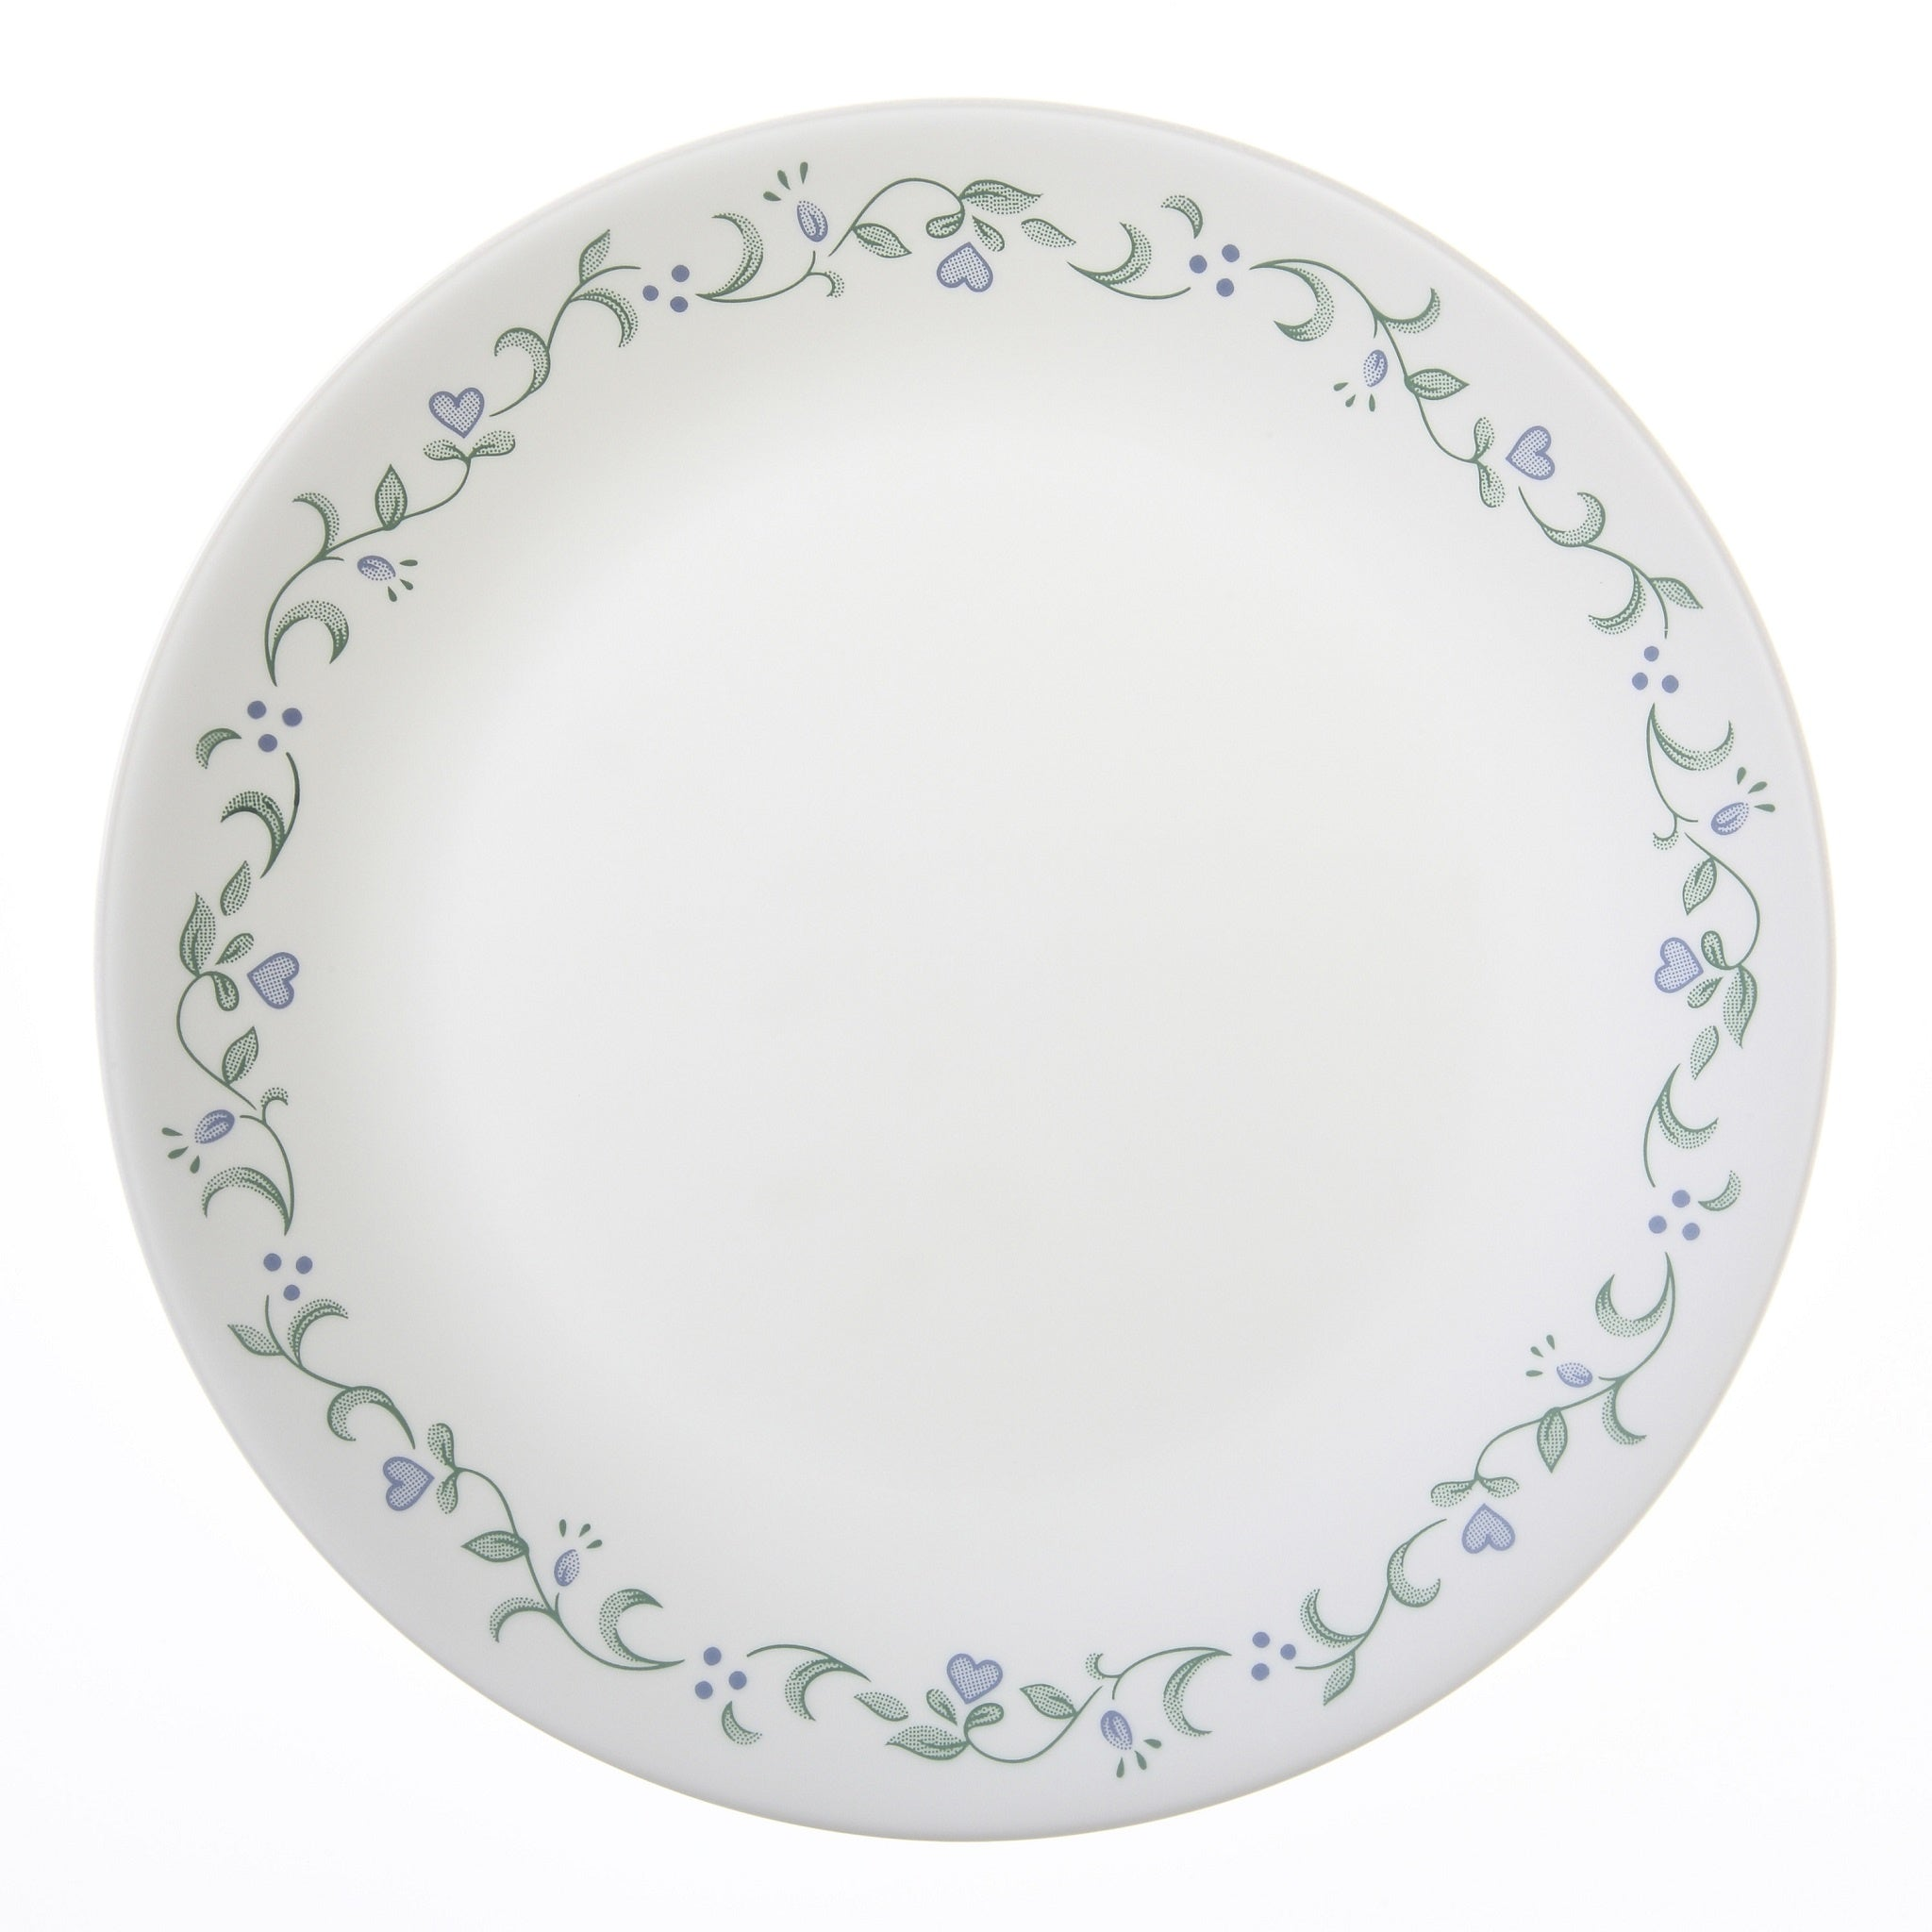 Corelle Classic Country Cottage 26cm Dinner Plate-6018486